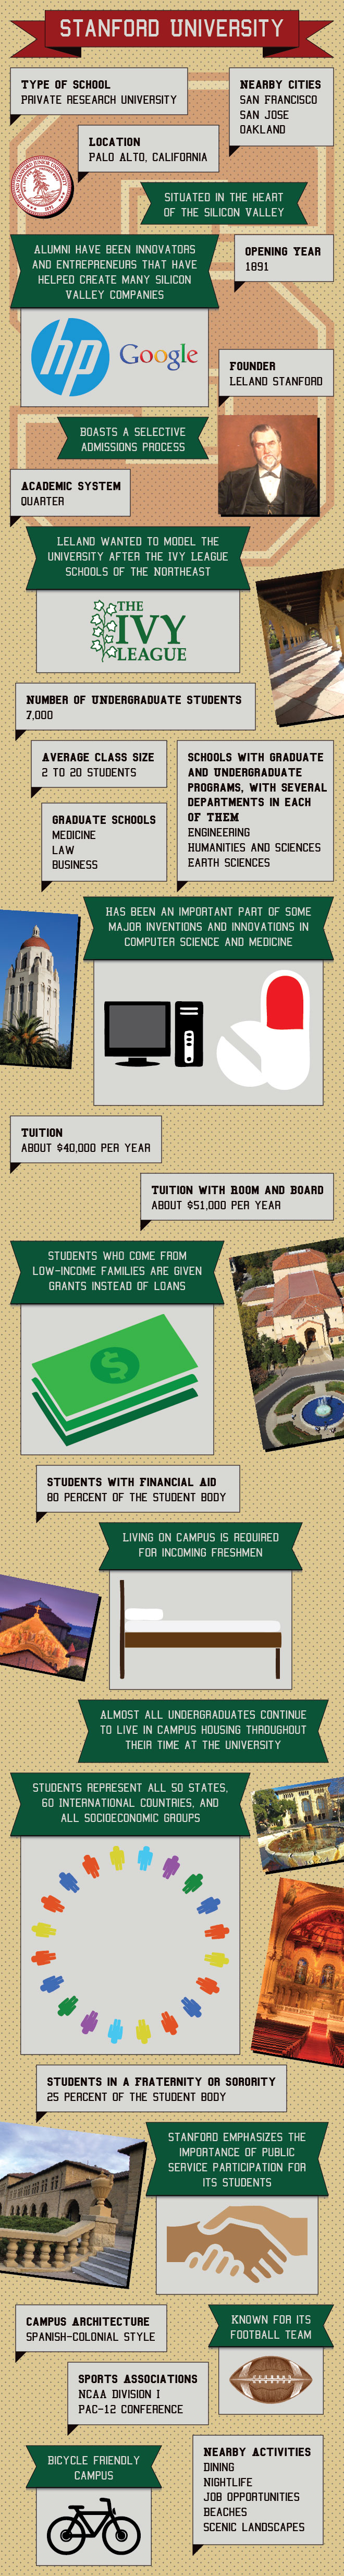 Stanford University Infographic | College Infographics | College